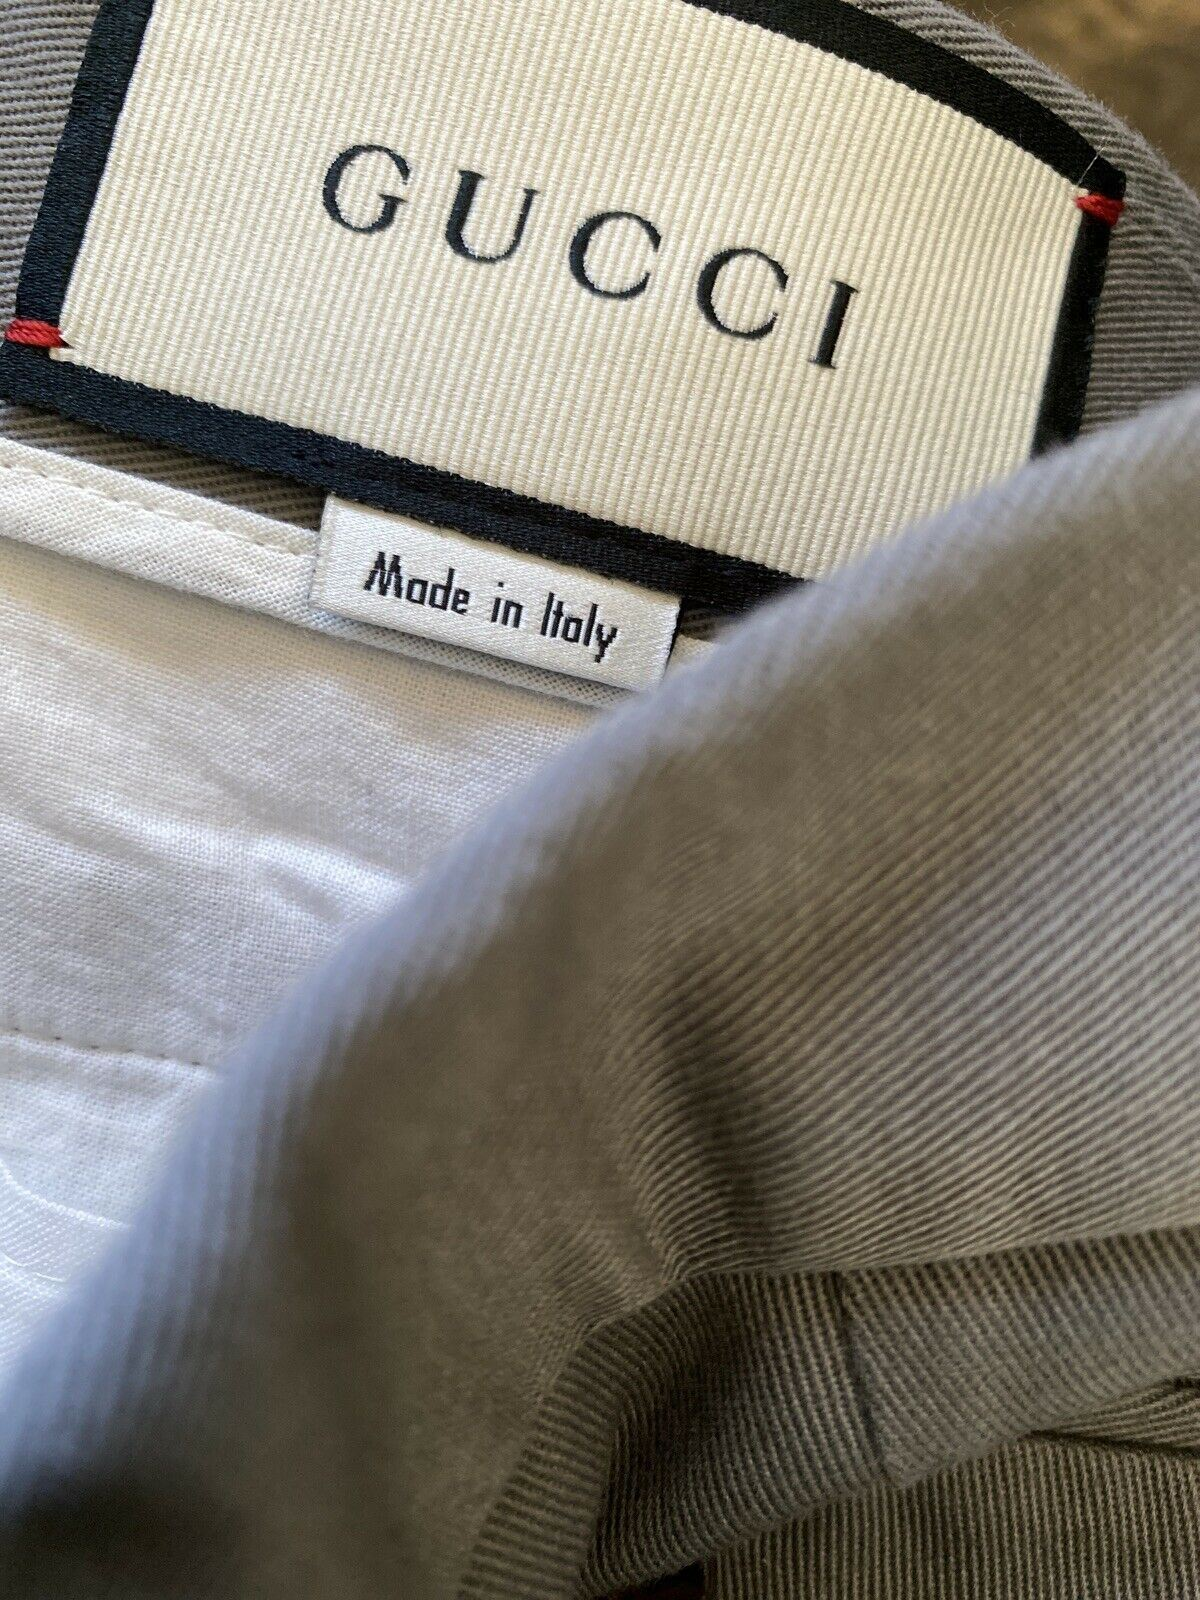 New $745 Gucci Men Military Cotton Pants Gray 30 US ( 44 Eu ) Made in Italy